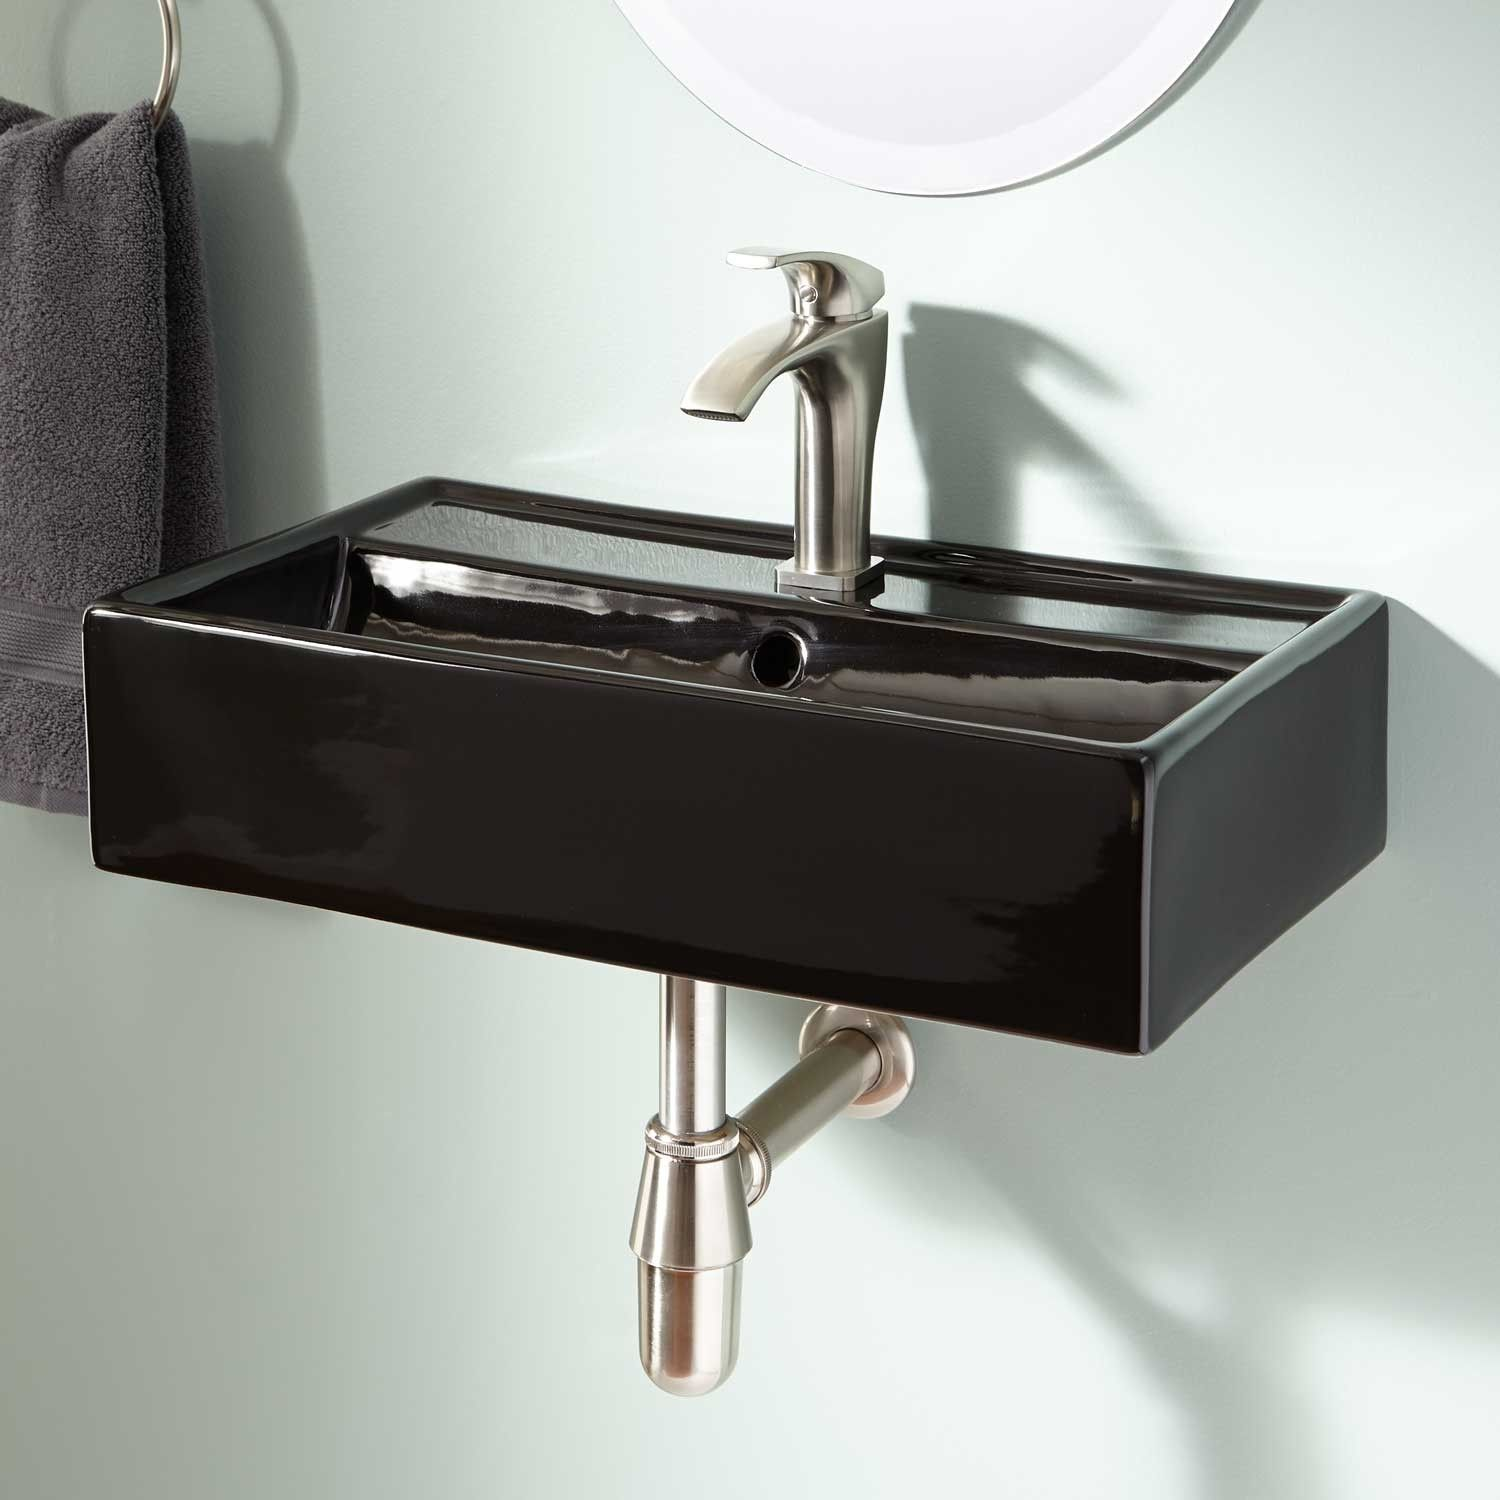 A Small Wall Mount Sink Works Great In The Powder Room Magali